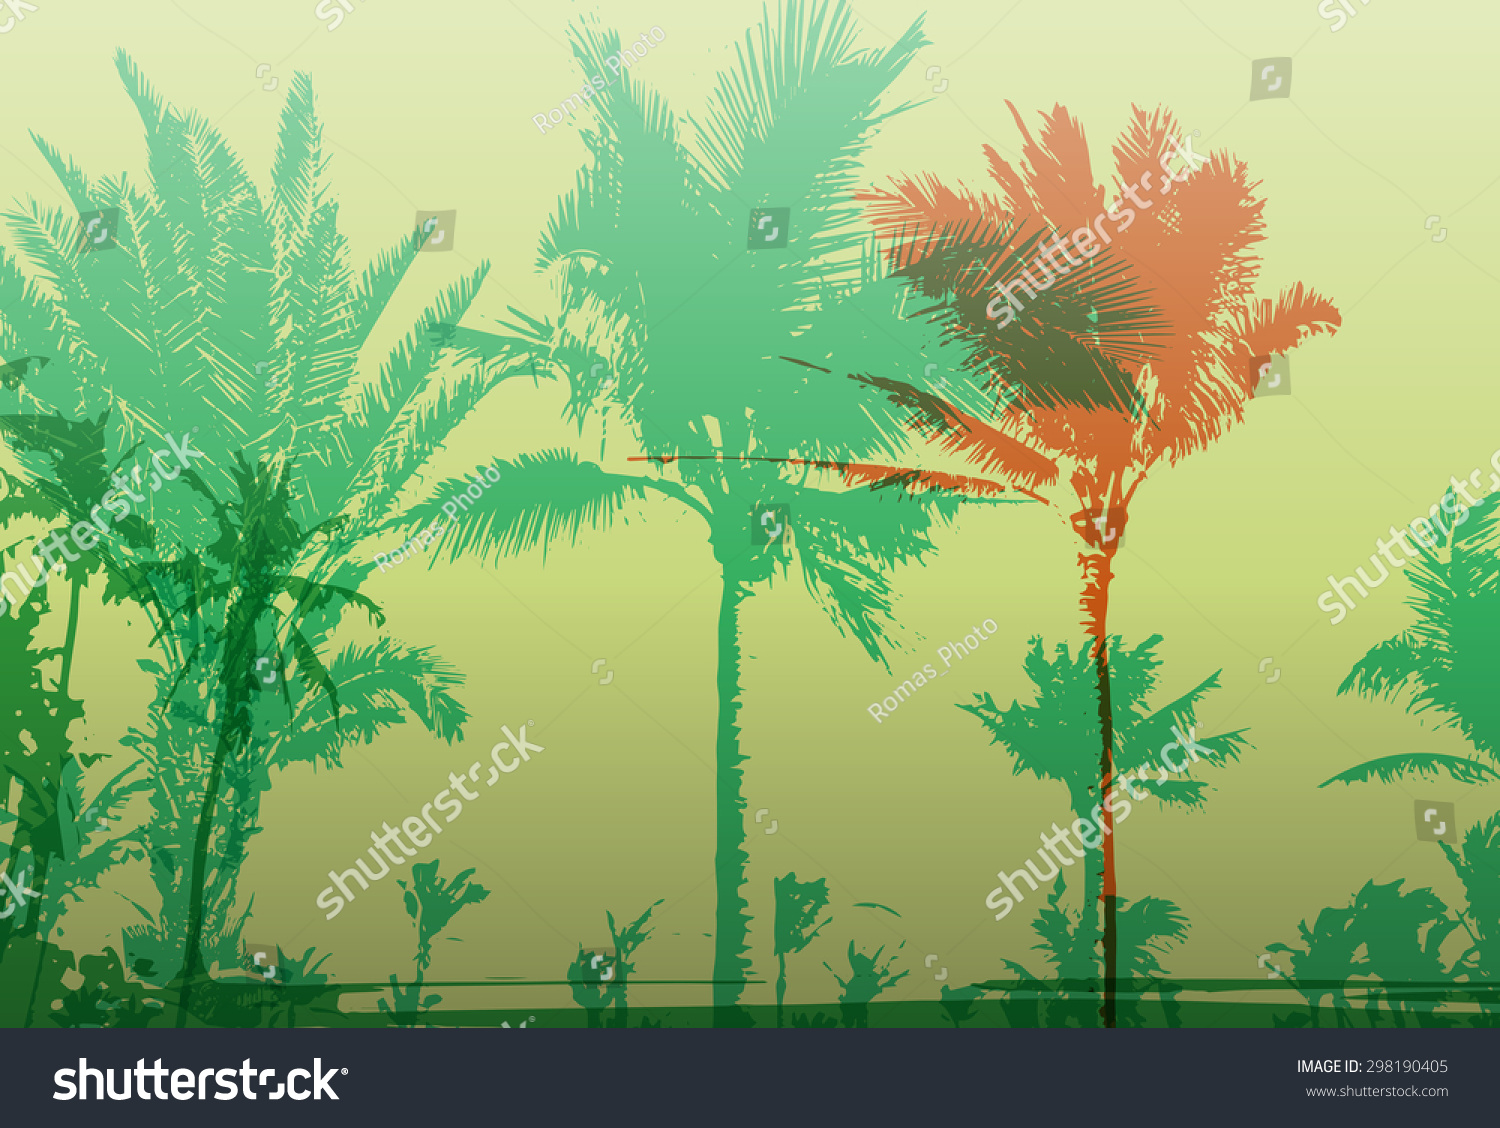 Colorful Background Silhouette Palm Trees On Stock Vector 298190405 ...